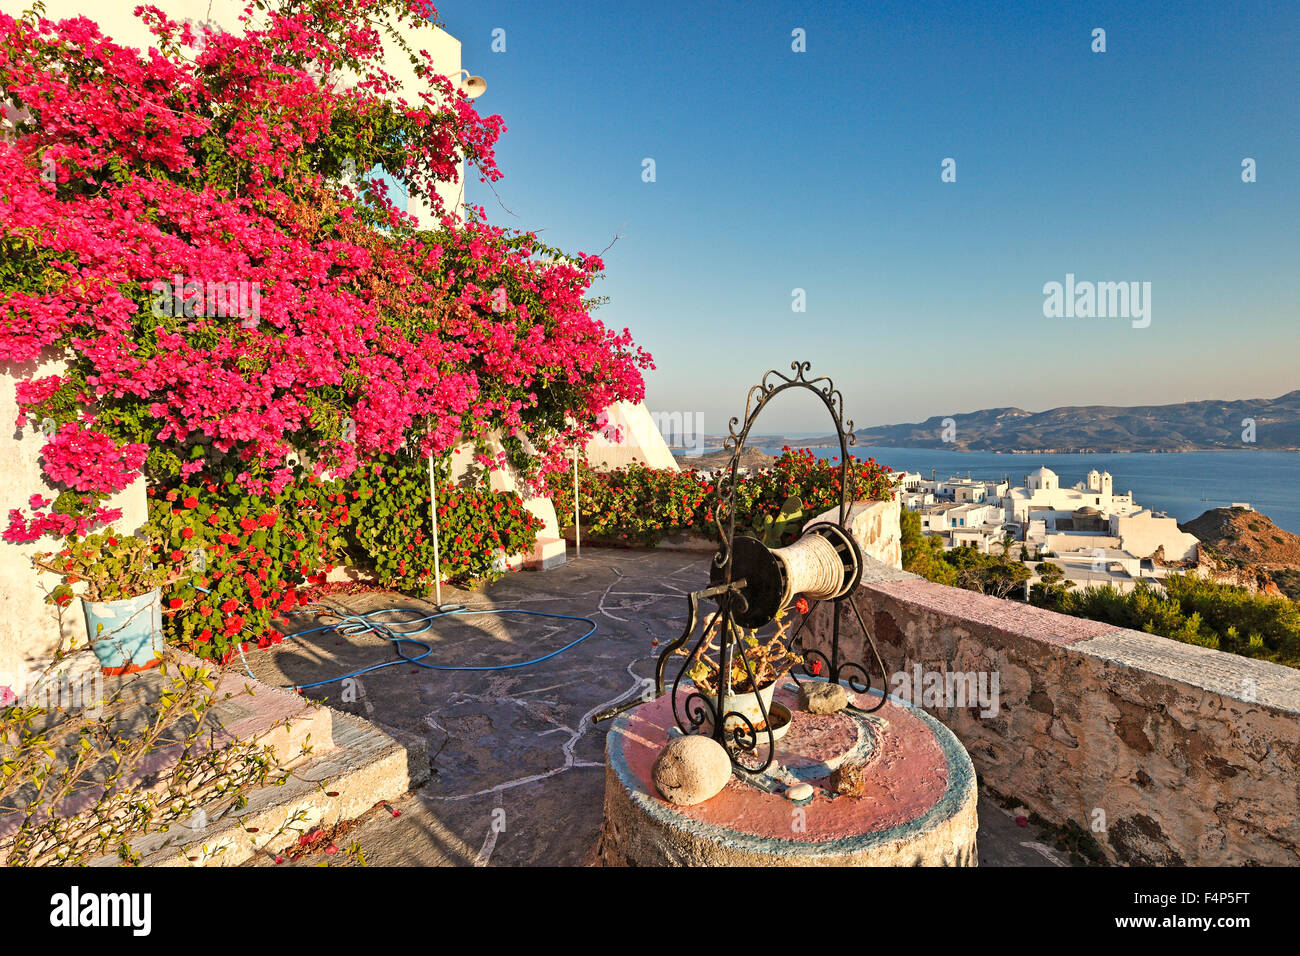 A house with water well in the traditional village of Plaka in Milos, Greece - Stock Image